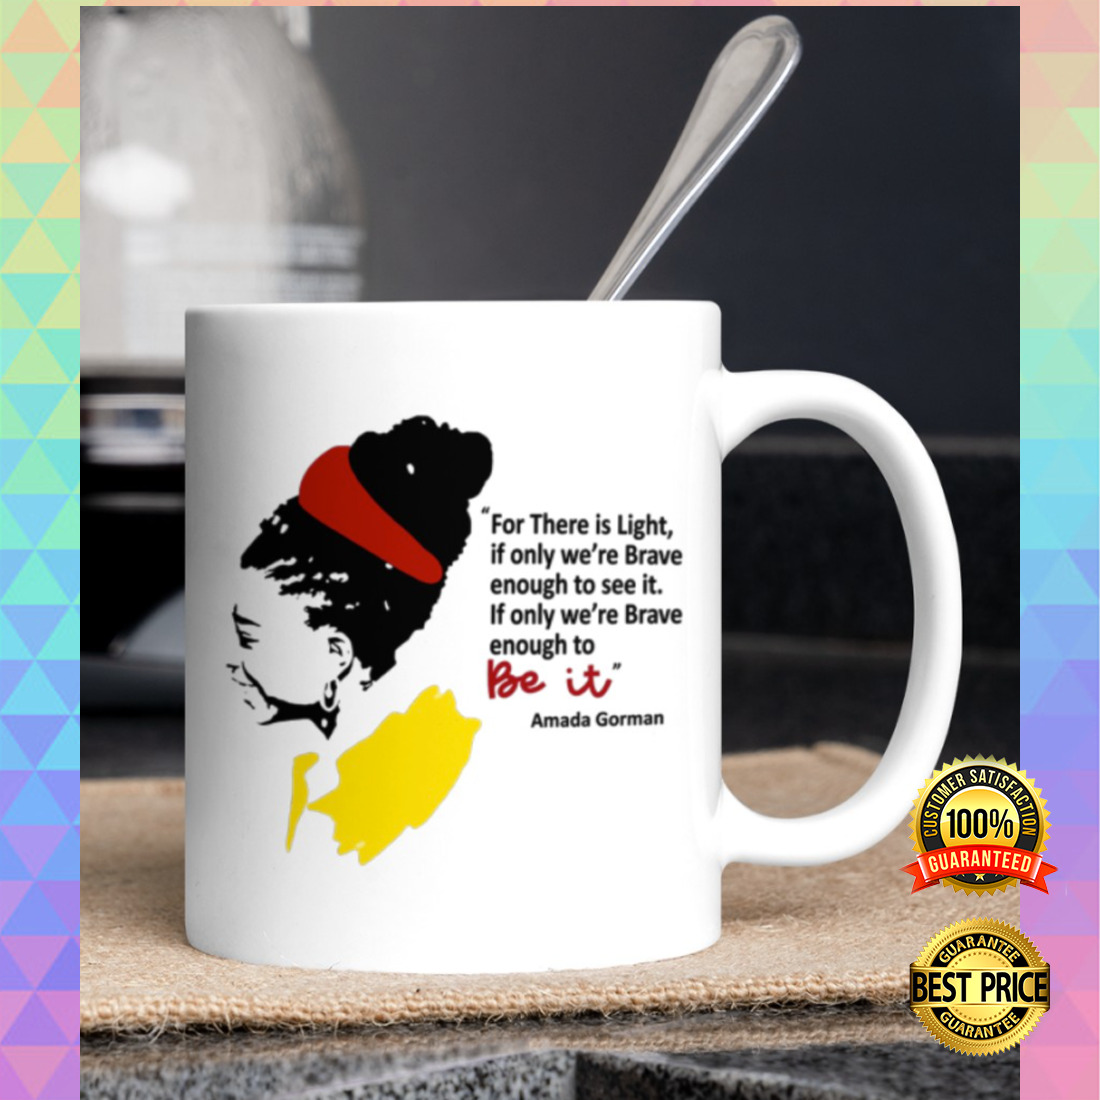 For there is light if only we're brave enough to see it mug 4